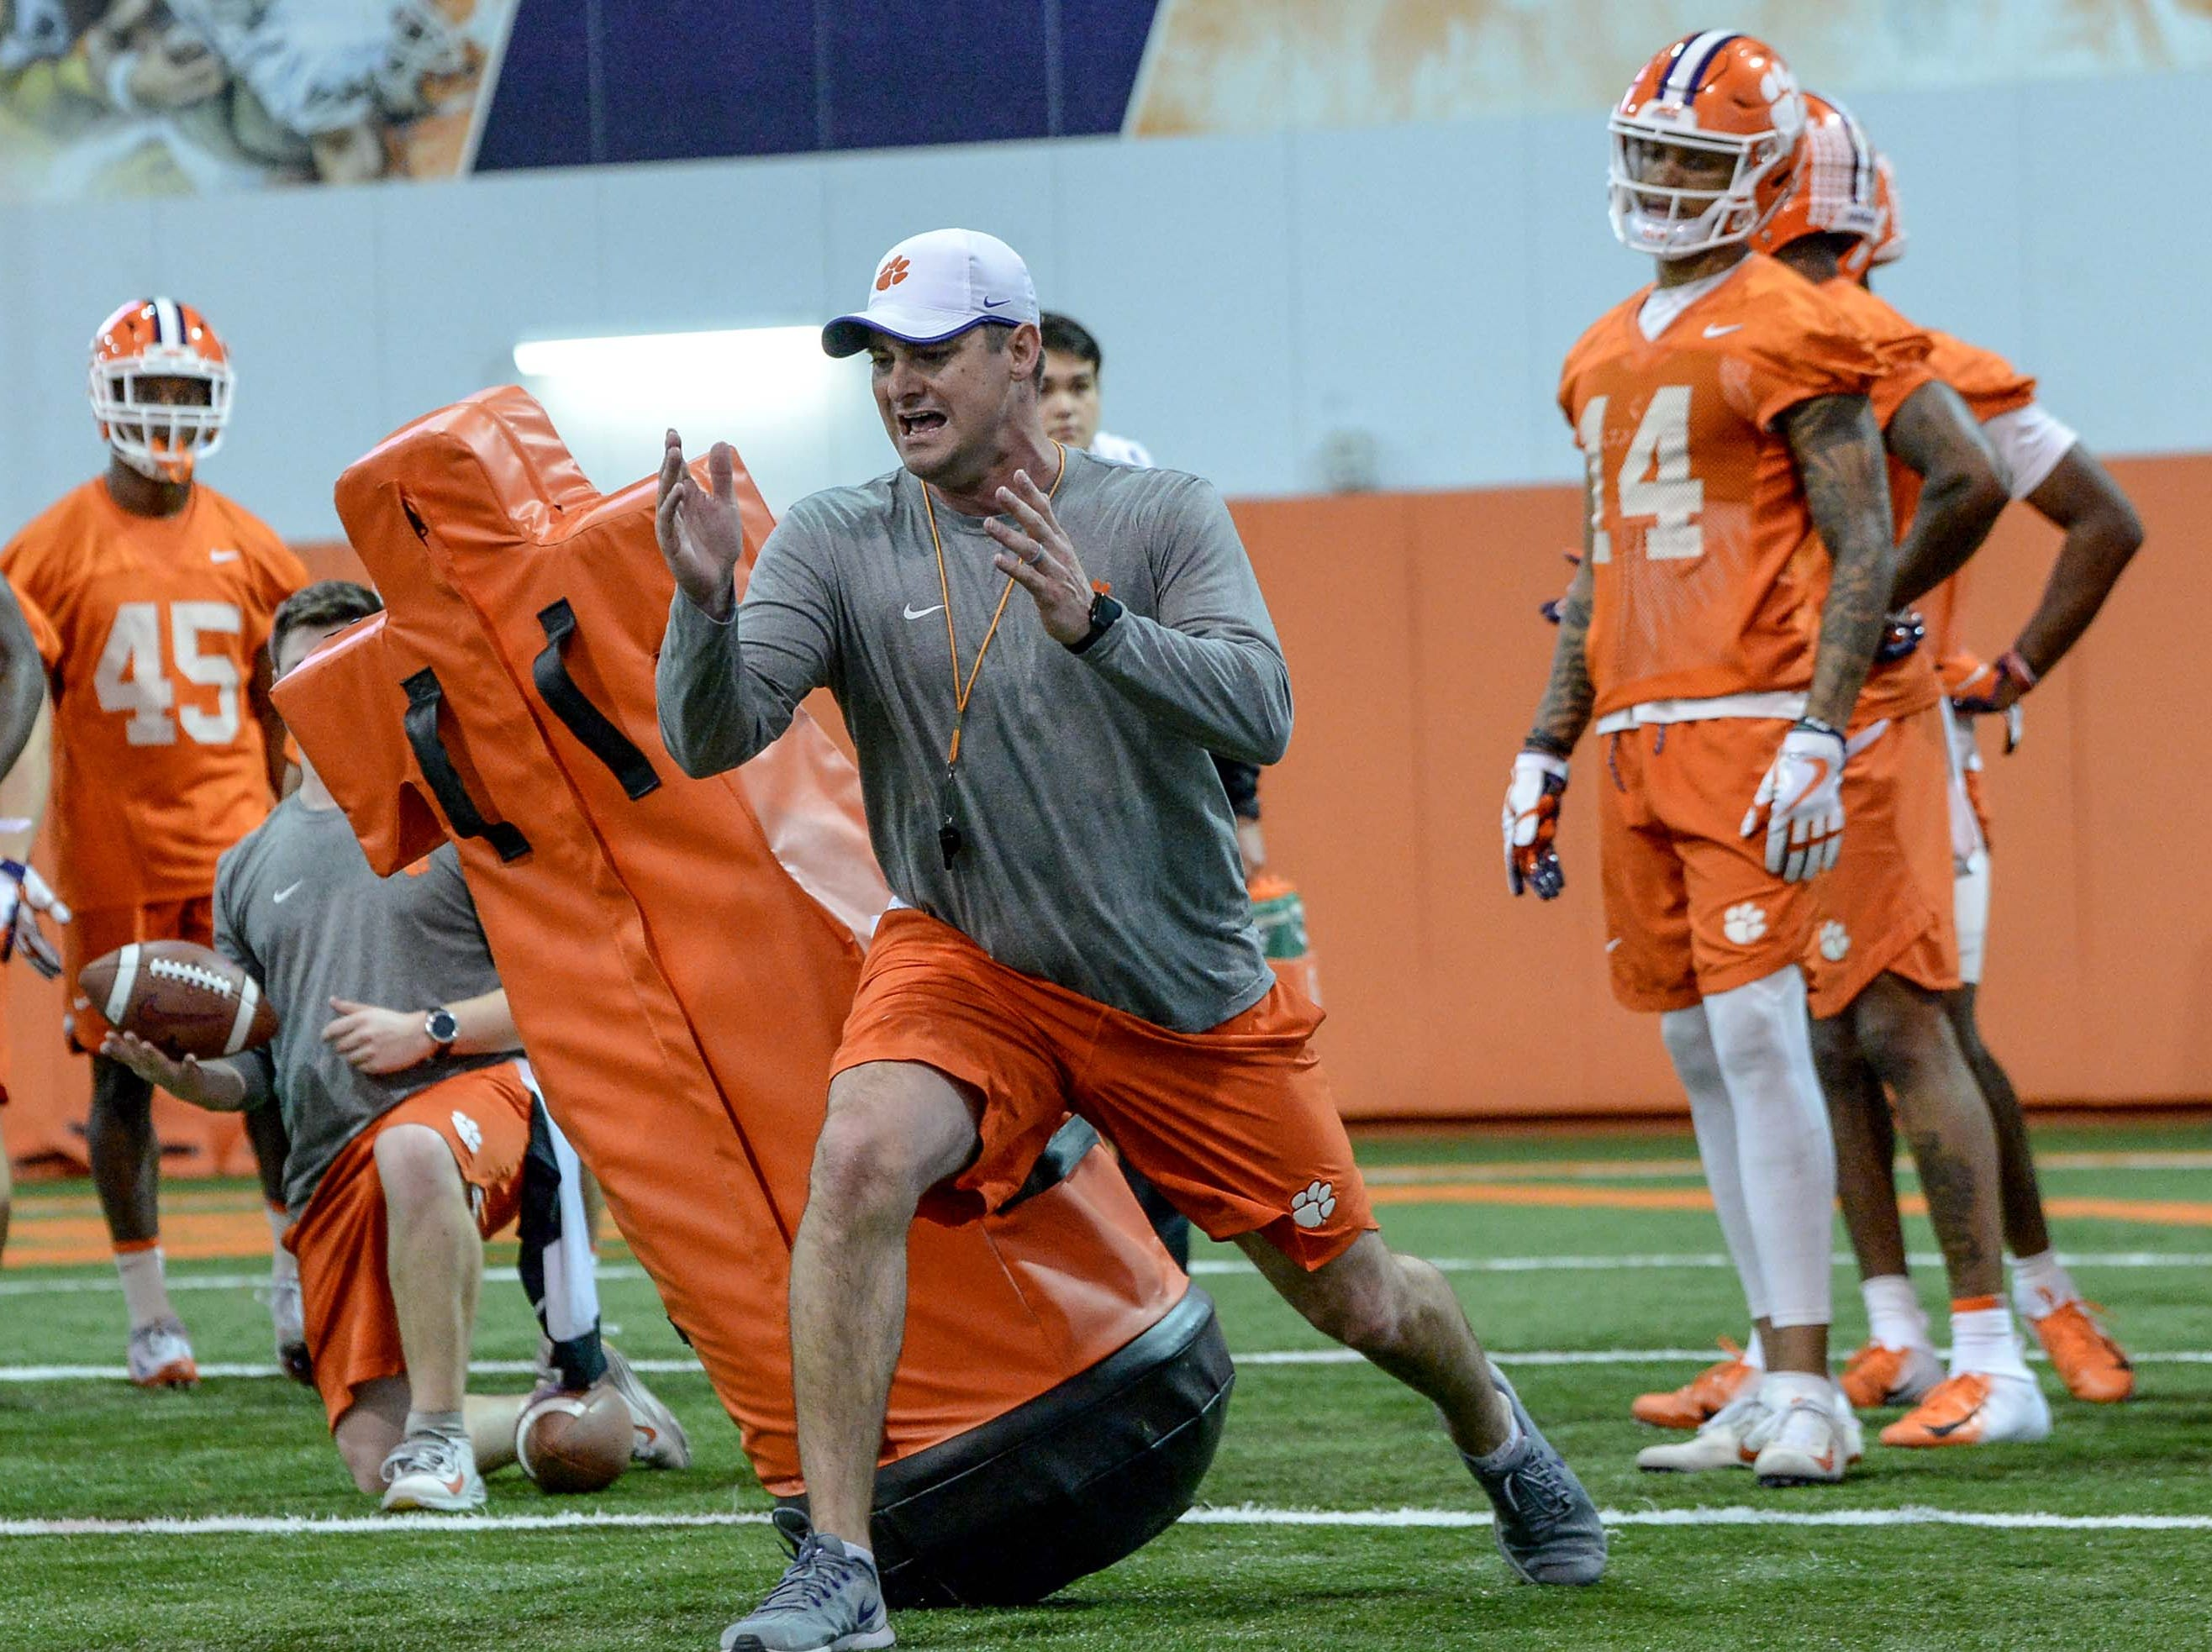 Clemson wide receiver coach Jeff Scott shows how to run through a drill during practice at the Poe Indoor Facility in Clemson Friday.